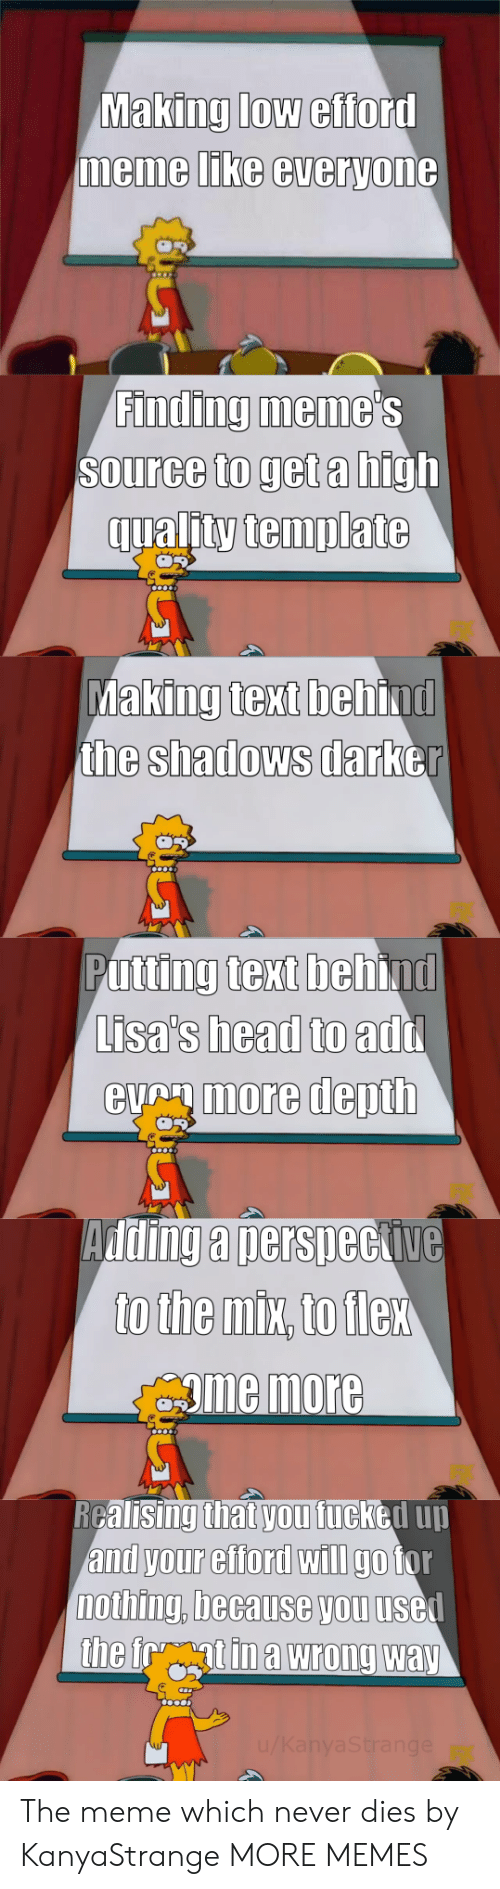 the shadows: Making low efford  memme LIKe everyone  Finding meme  Source to get a high  qualitytemplate  king text beh  the shadows darb  Ma  ind  er  Putting text behind  Lisa's head to  eumore depth  add  Adding a nersneckive  gme more  RGalisingthat vou fucked uu  and your efford wIlI go tor  nothing, because you usel The meme which never dies by KanyaStrange MORE MEMES